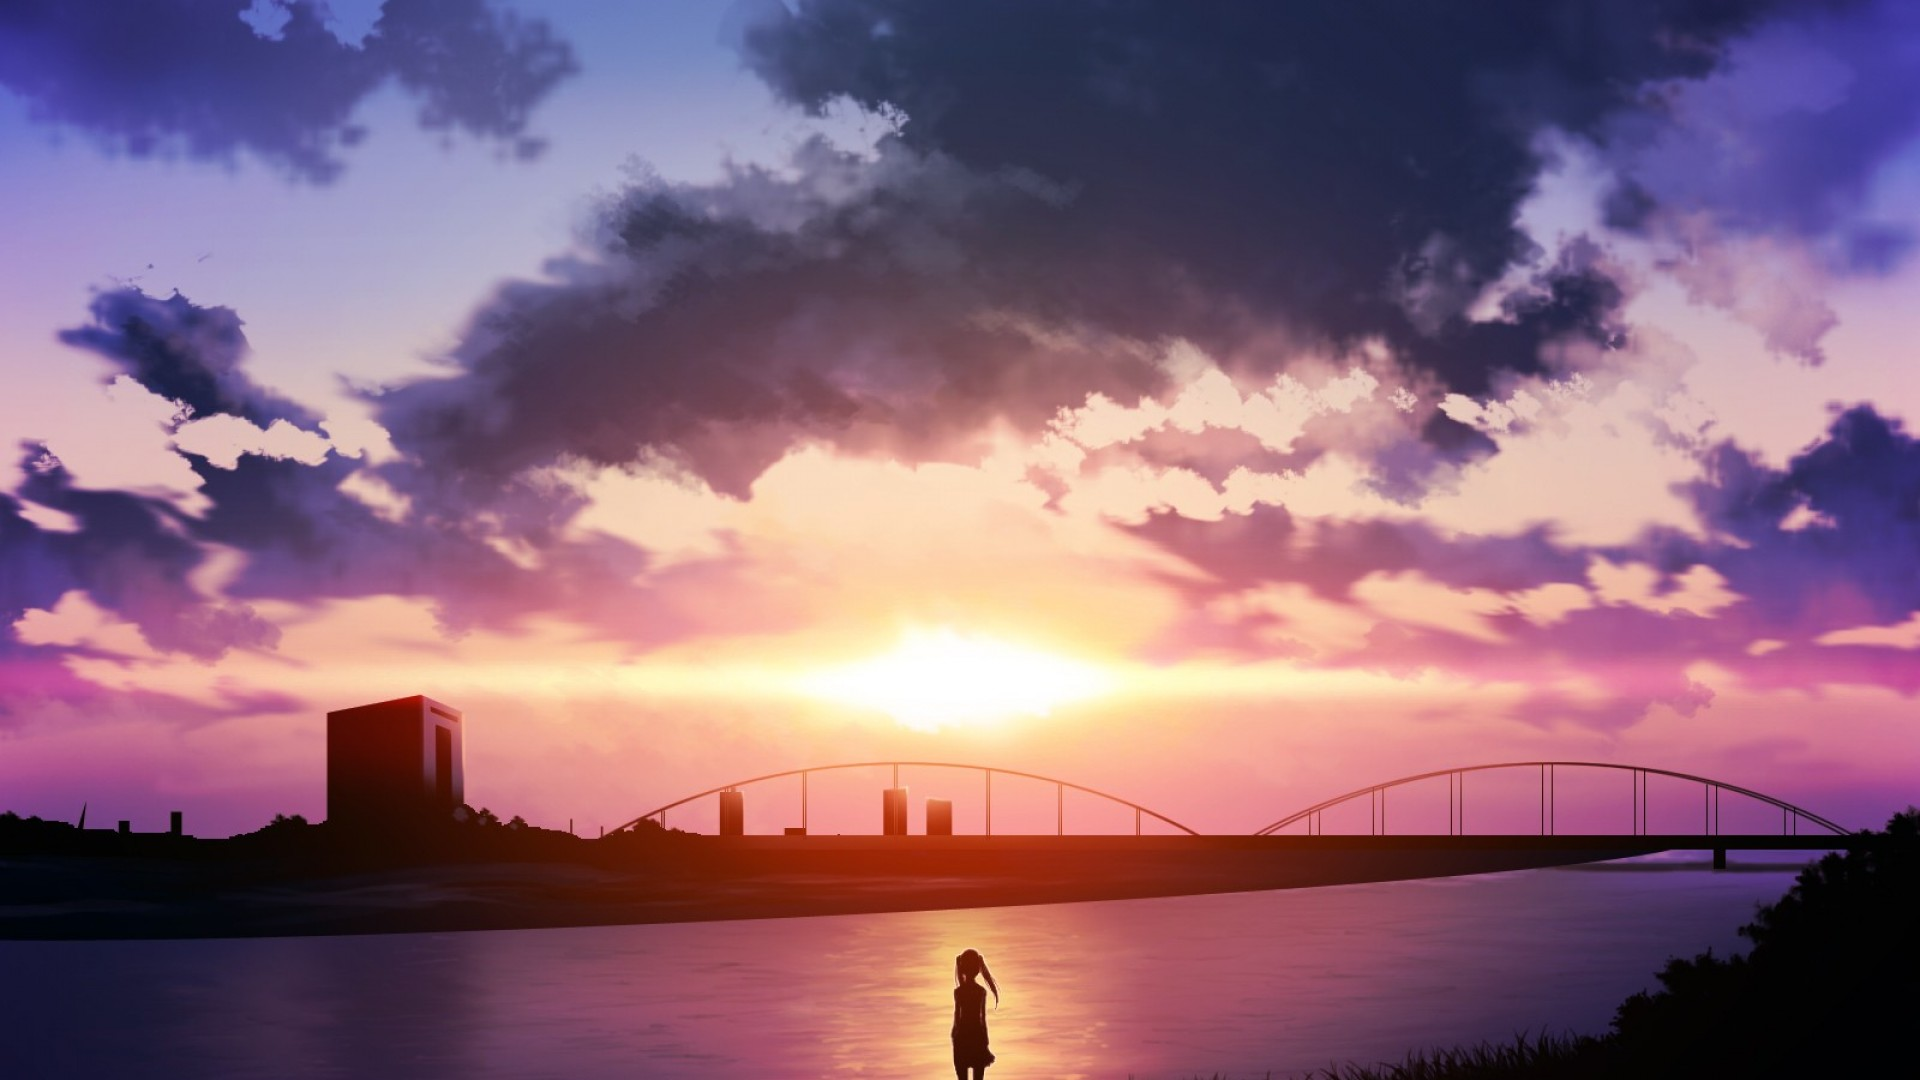 Sunset Anime Scenery Wallpaper HD